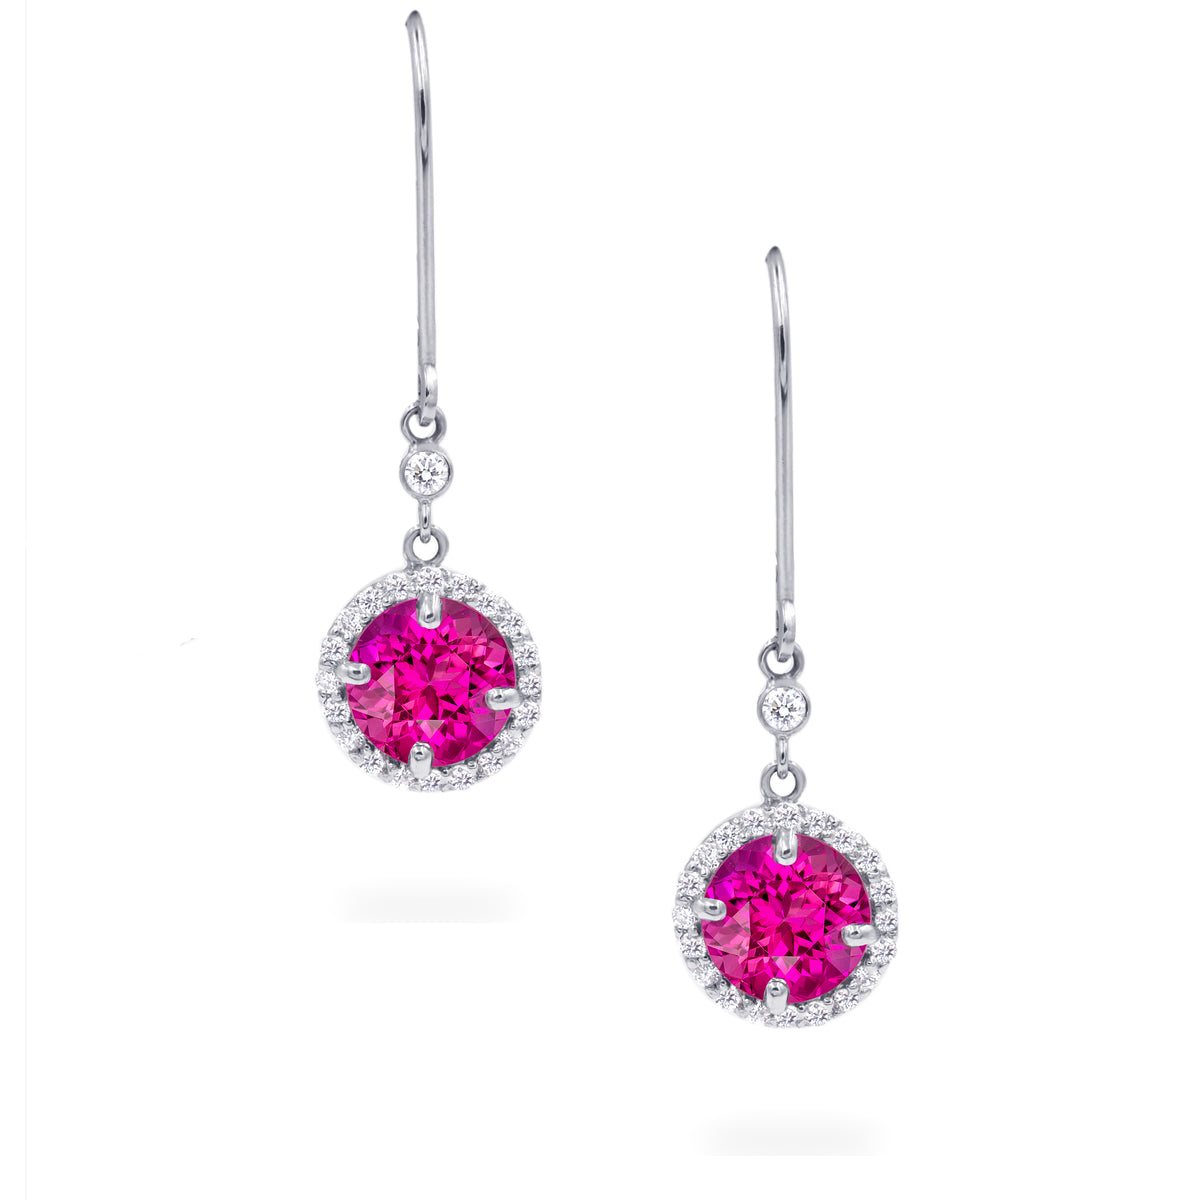 14K White Gold Tourmaline and Diamond Halo Earrings